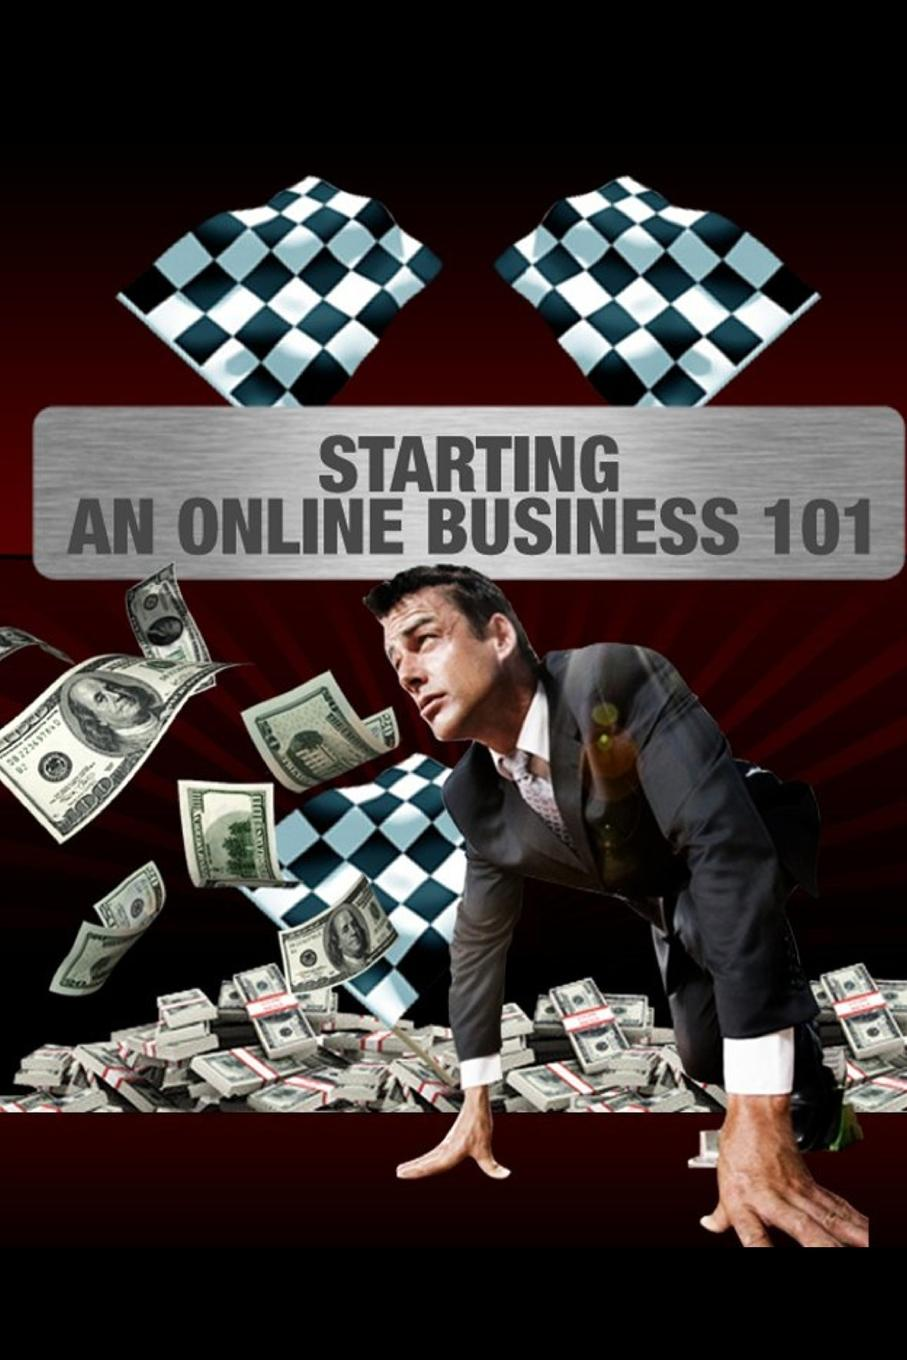 Starting an Online Business 101 When you're setting up an online business, you must treat it...